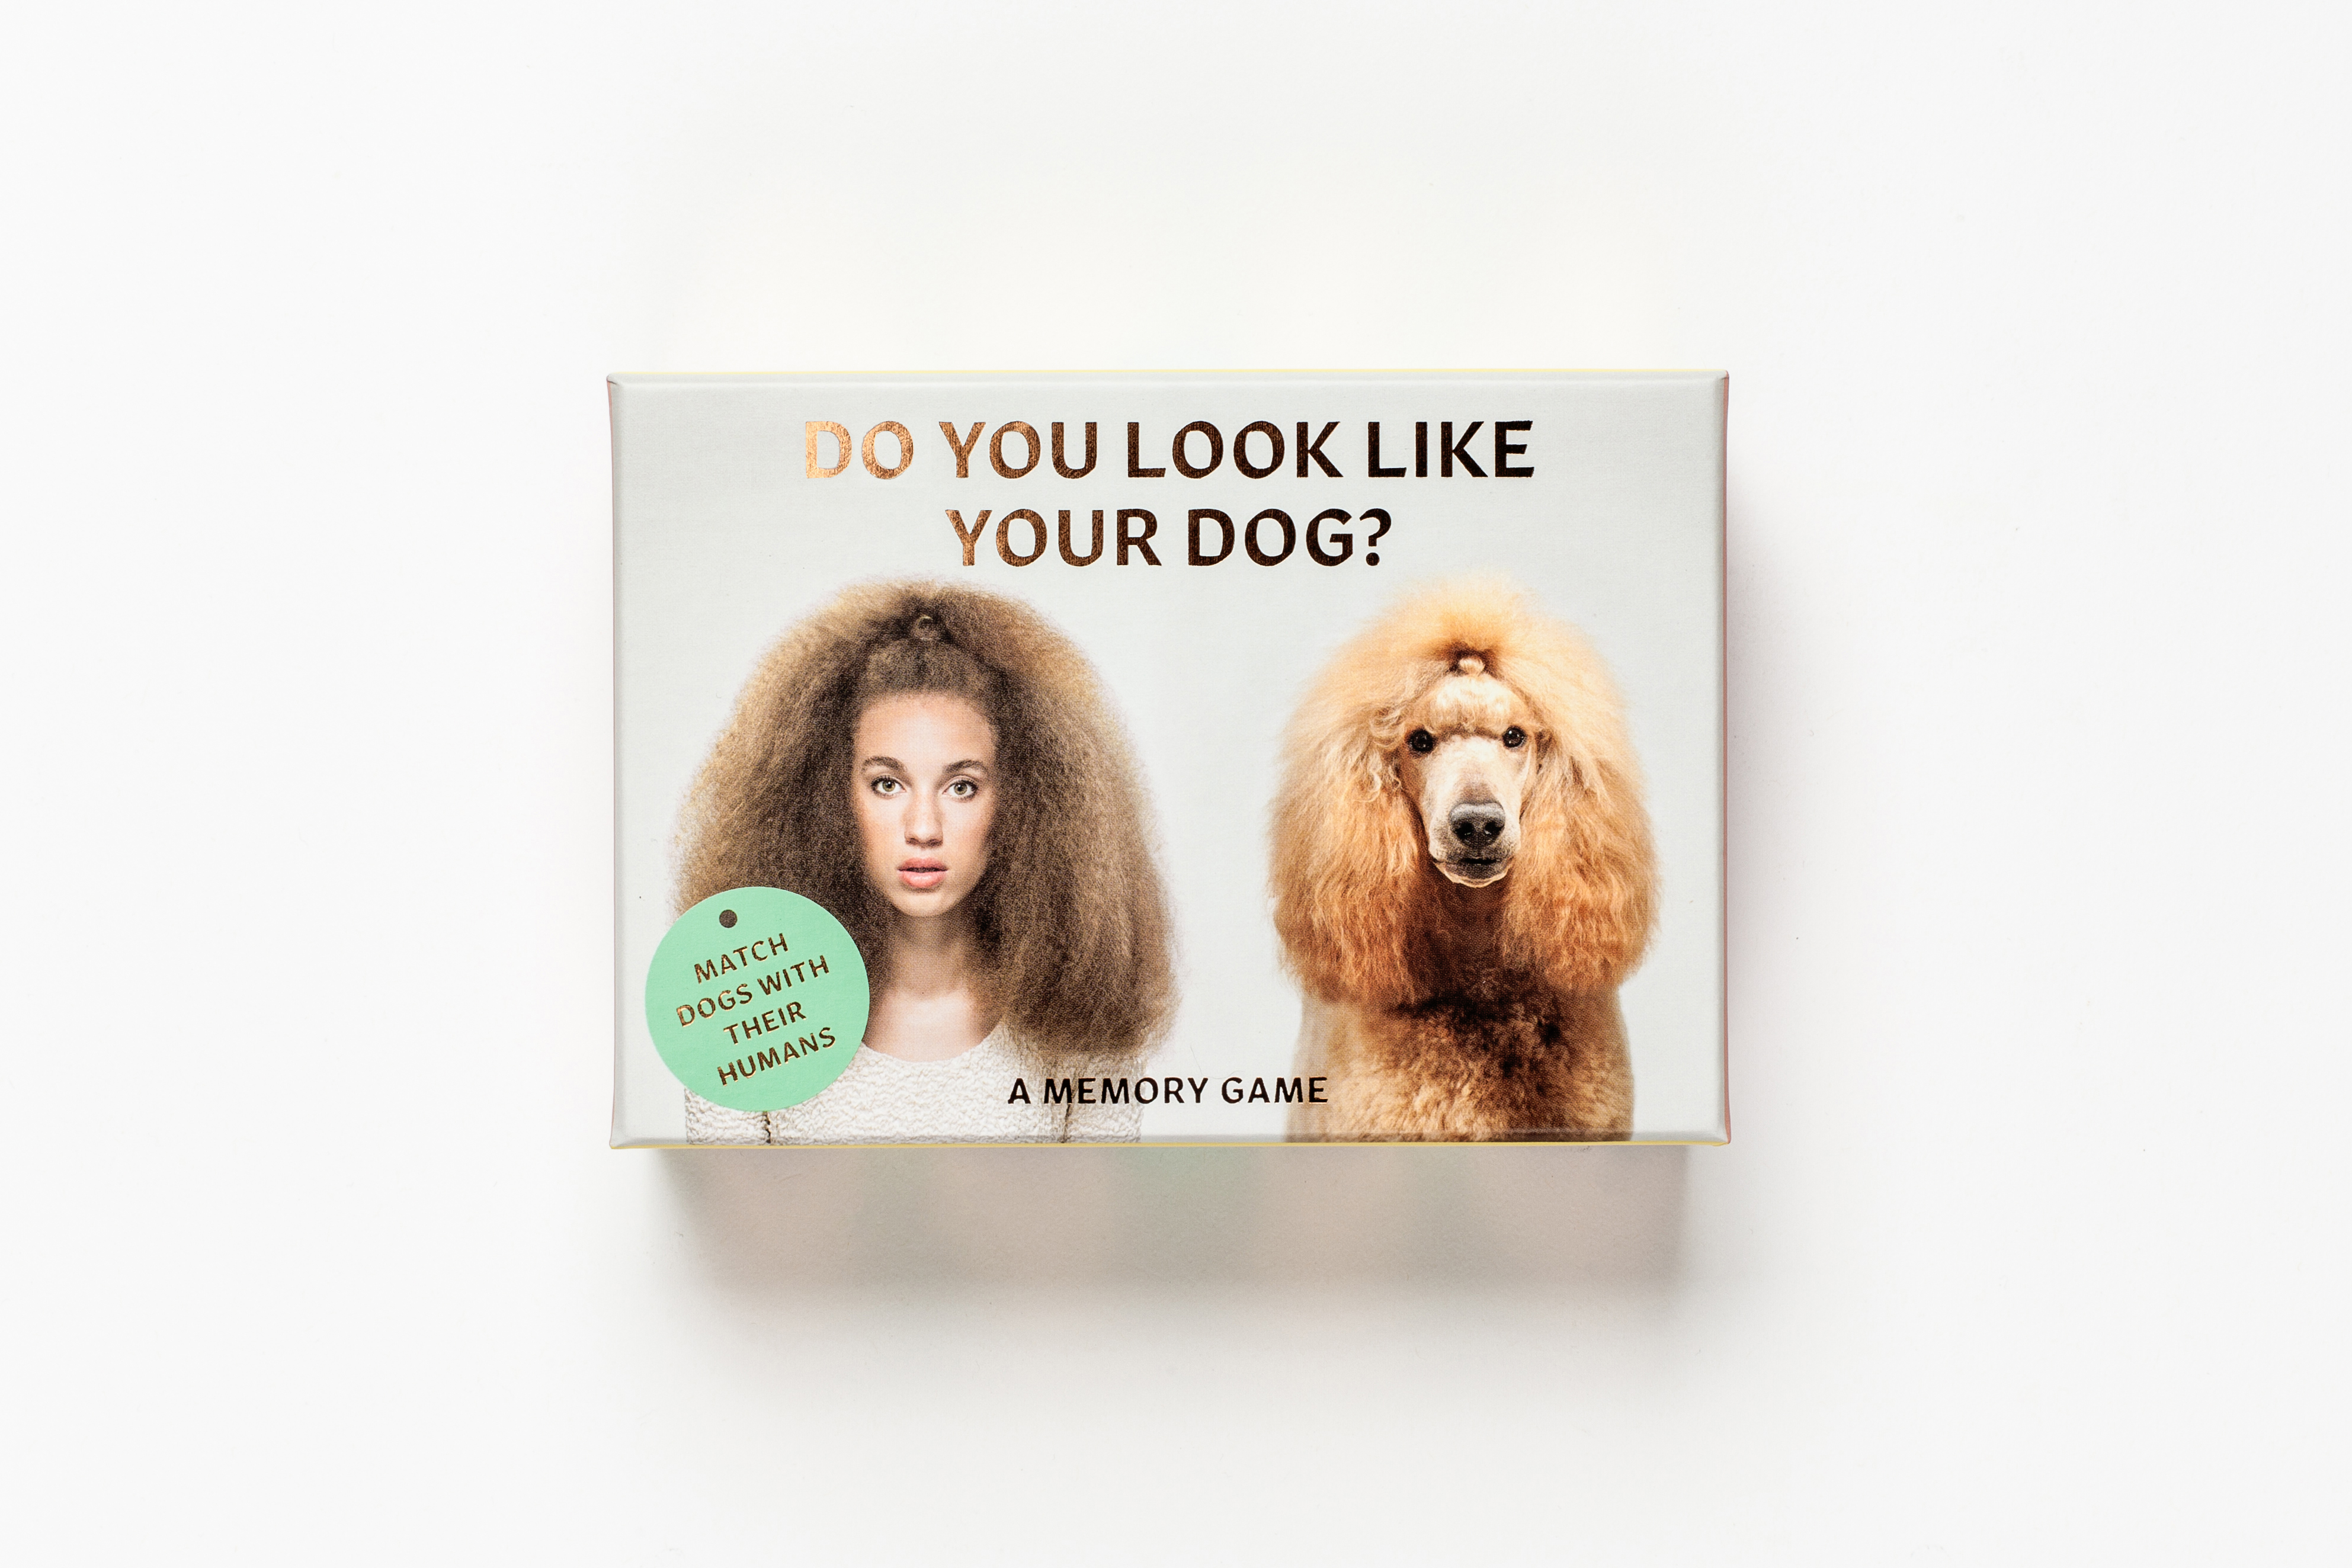 From Do you look like your dog?. Courtesy of Laurence King Publishing.